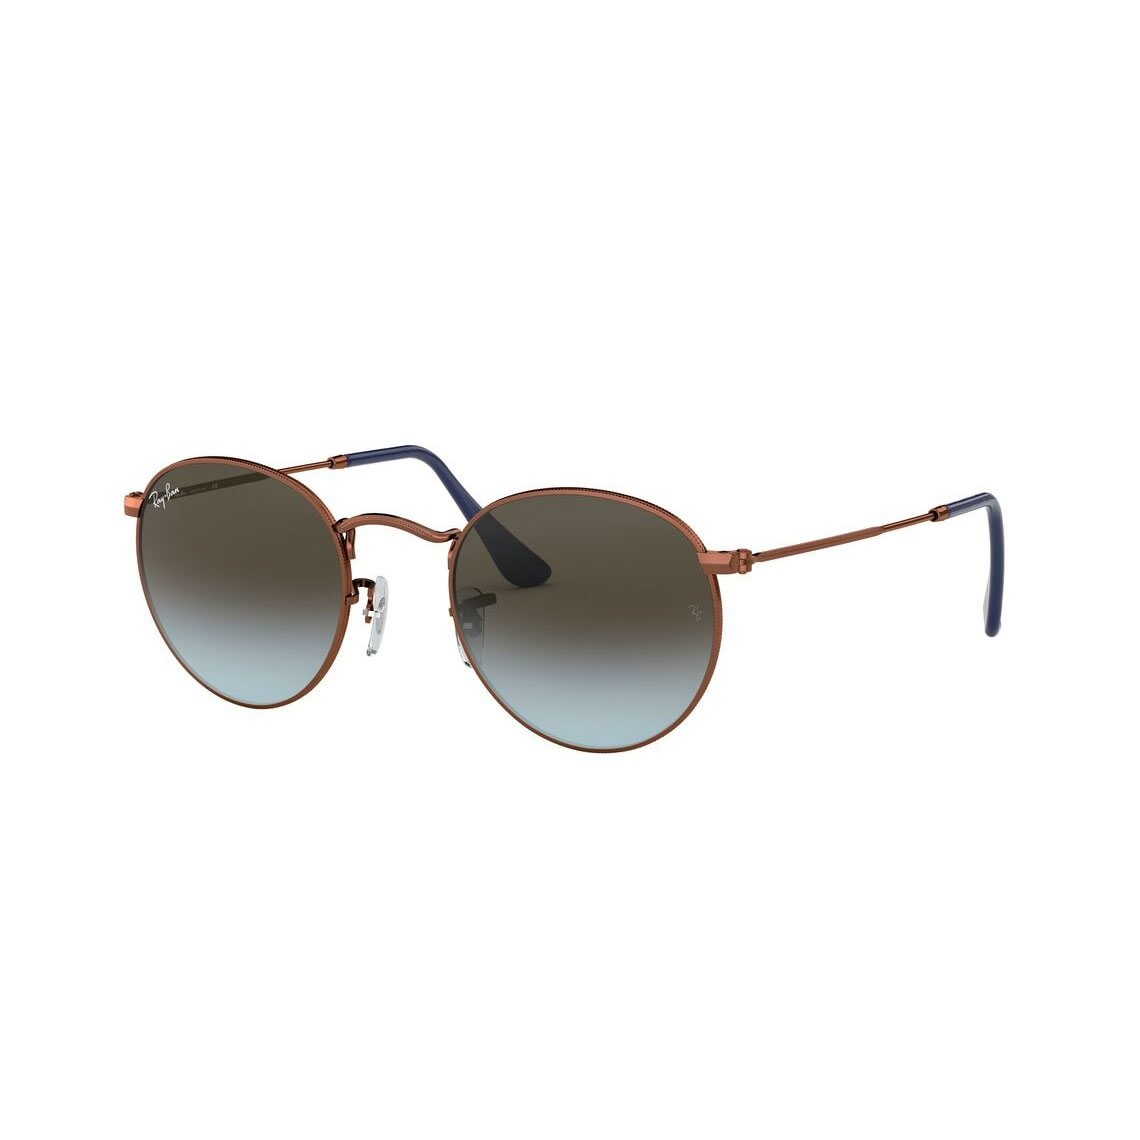 Ray-Ban Round metal RB3447 900396 53